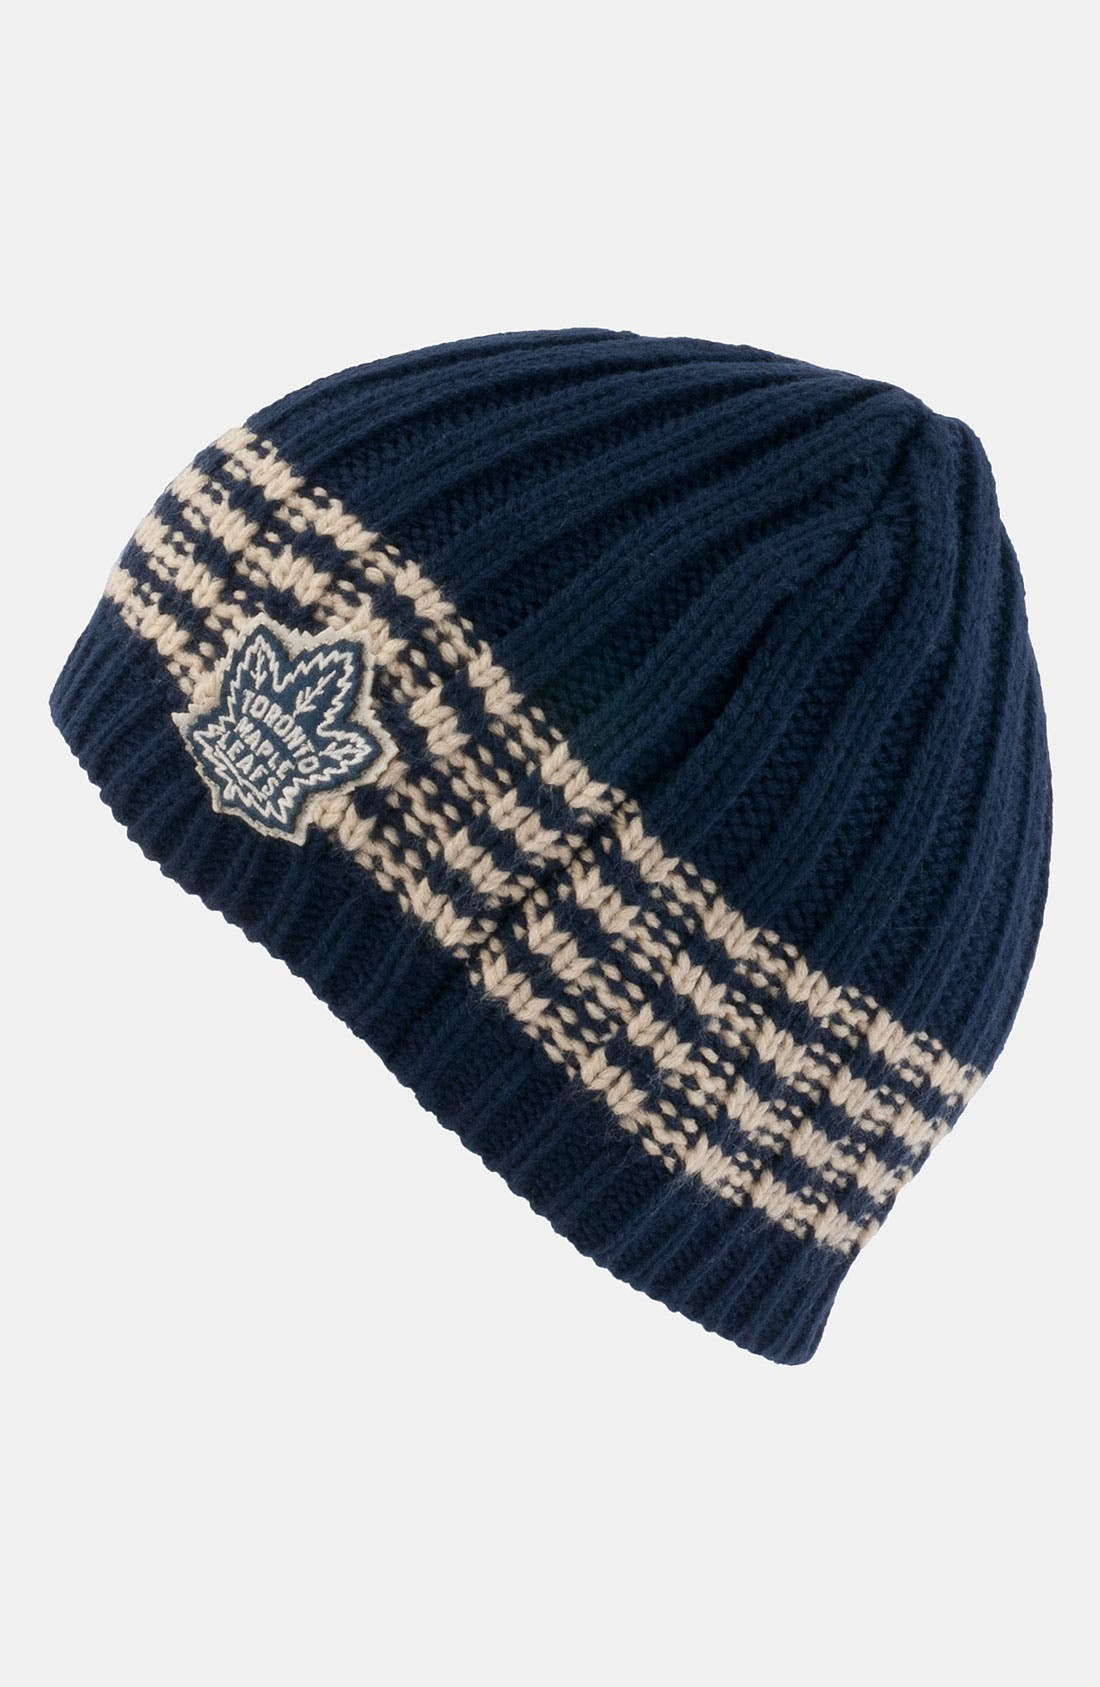 Alternate Image 1 Selected - American Needle 'Toronto Maple Leafs - Targhee' Knit Hat